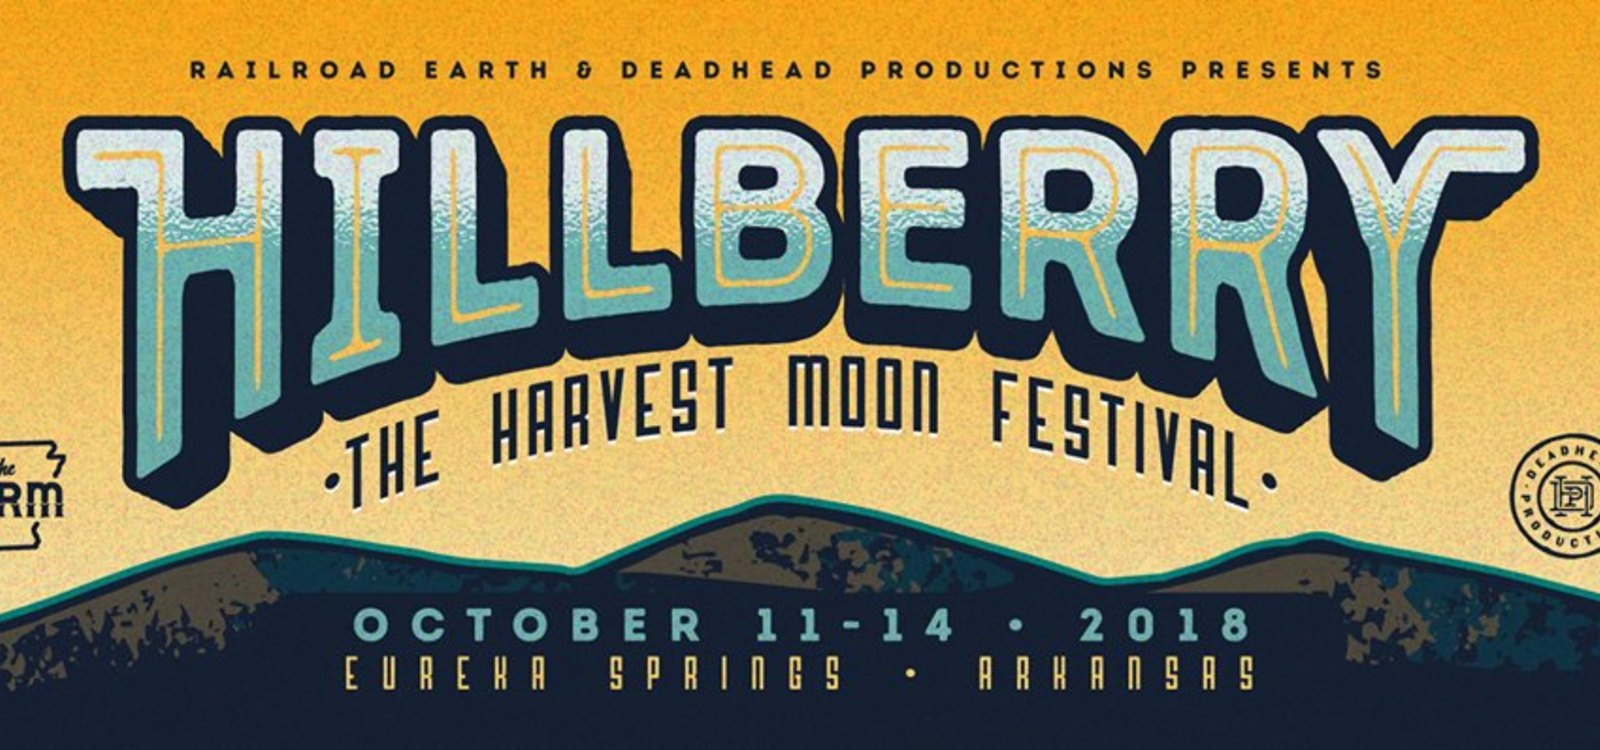 Hillberry: The Harvest Moon